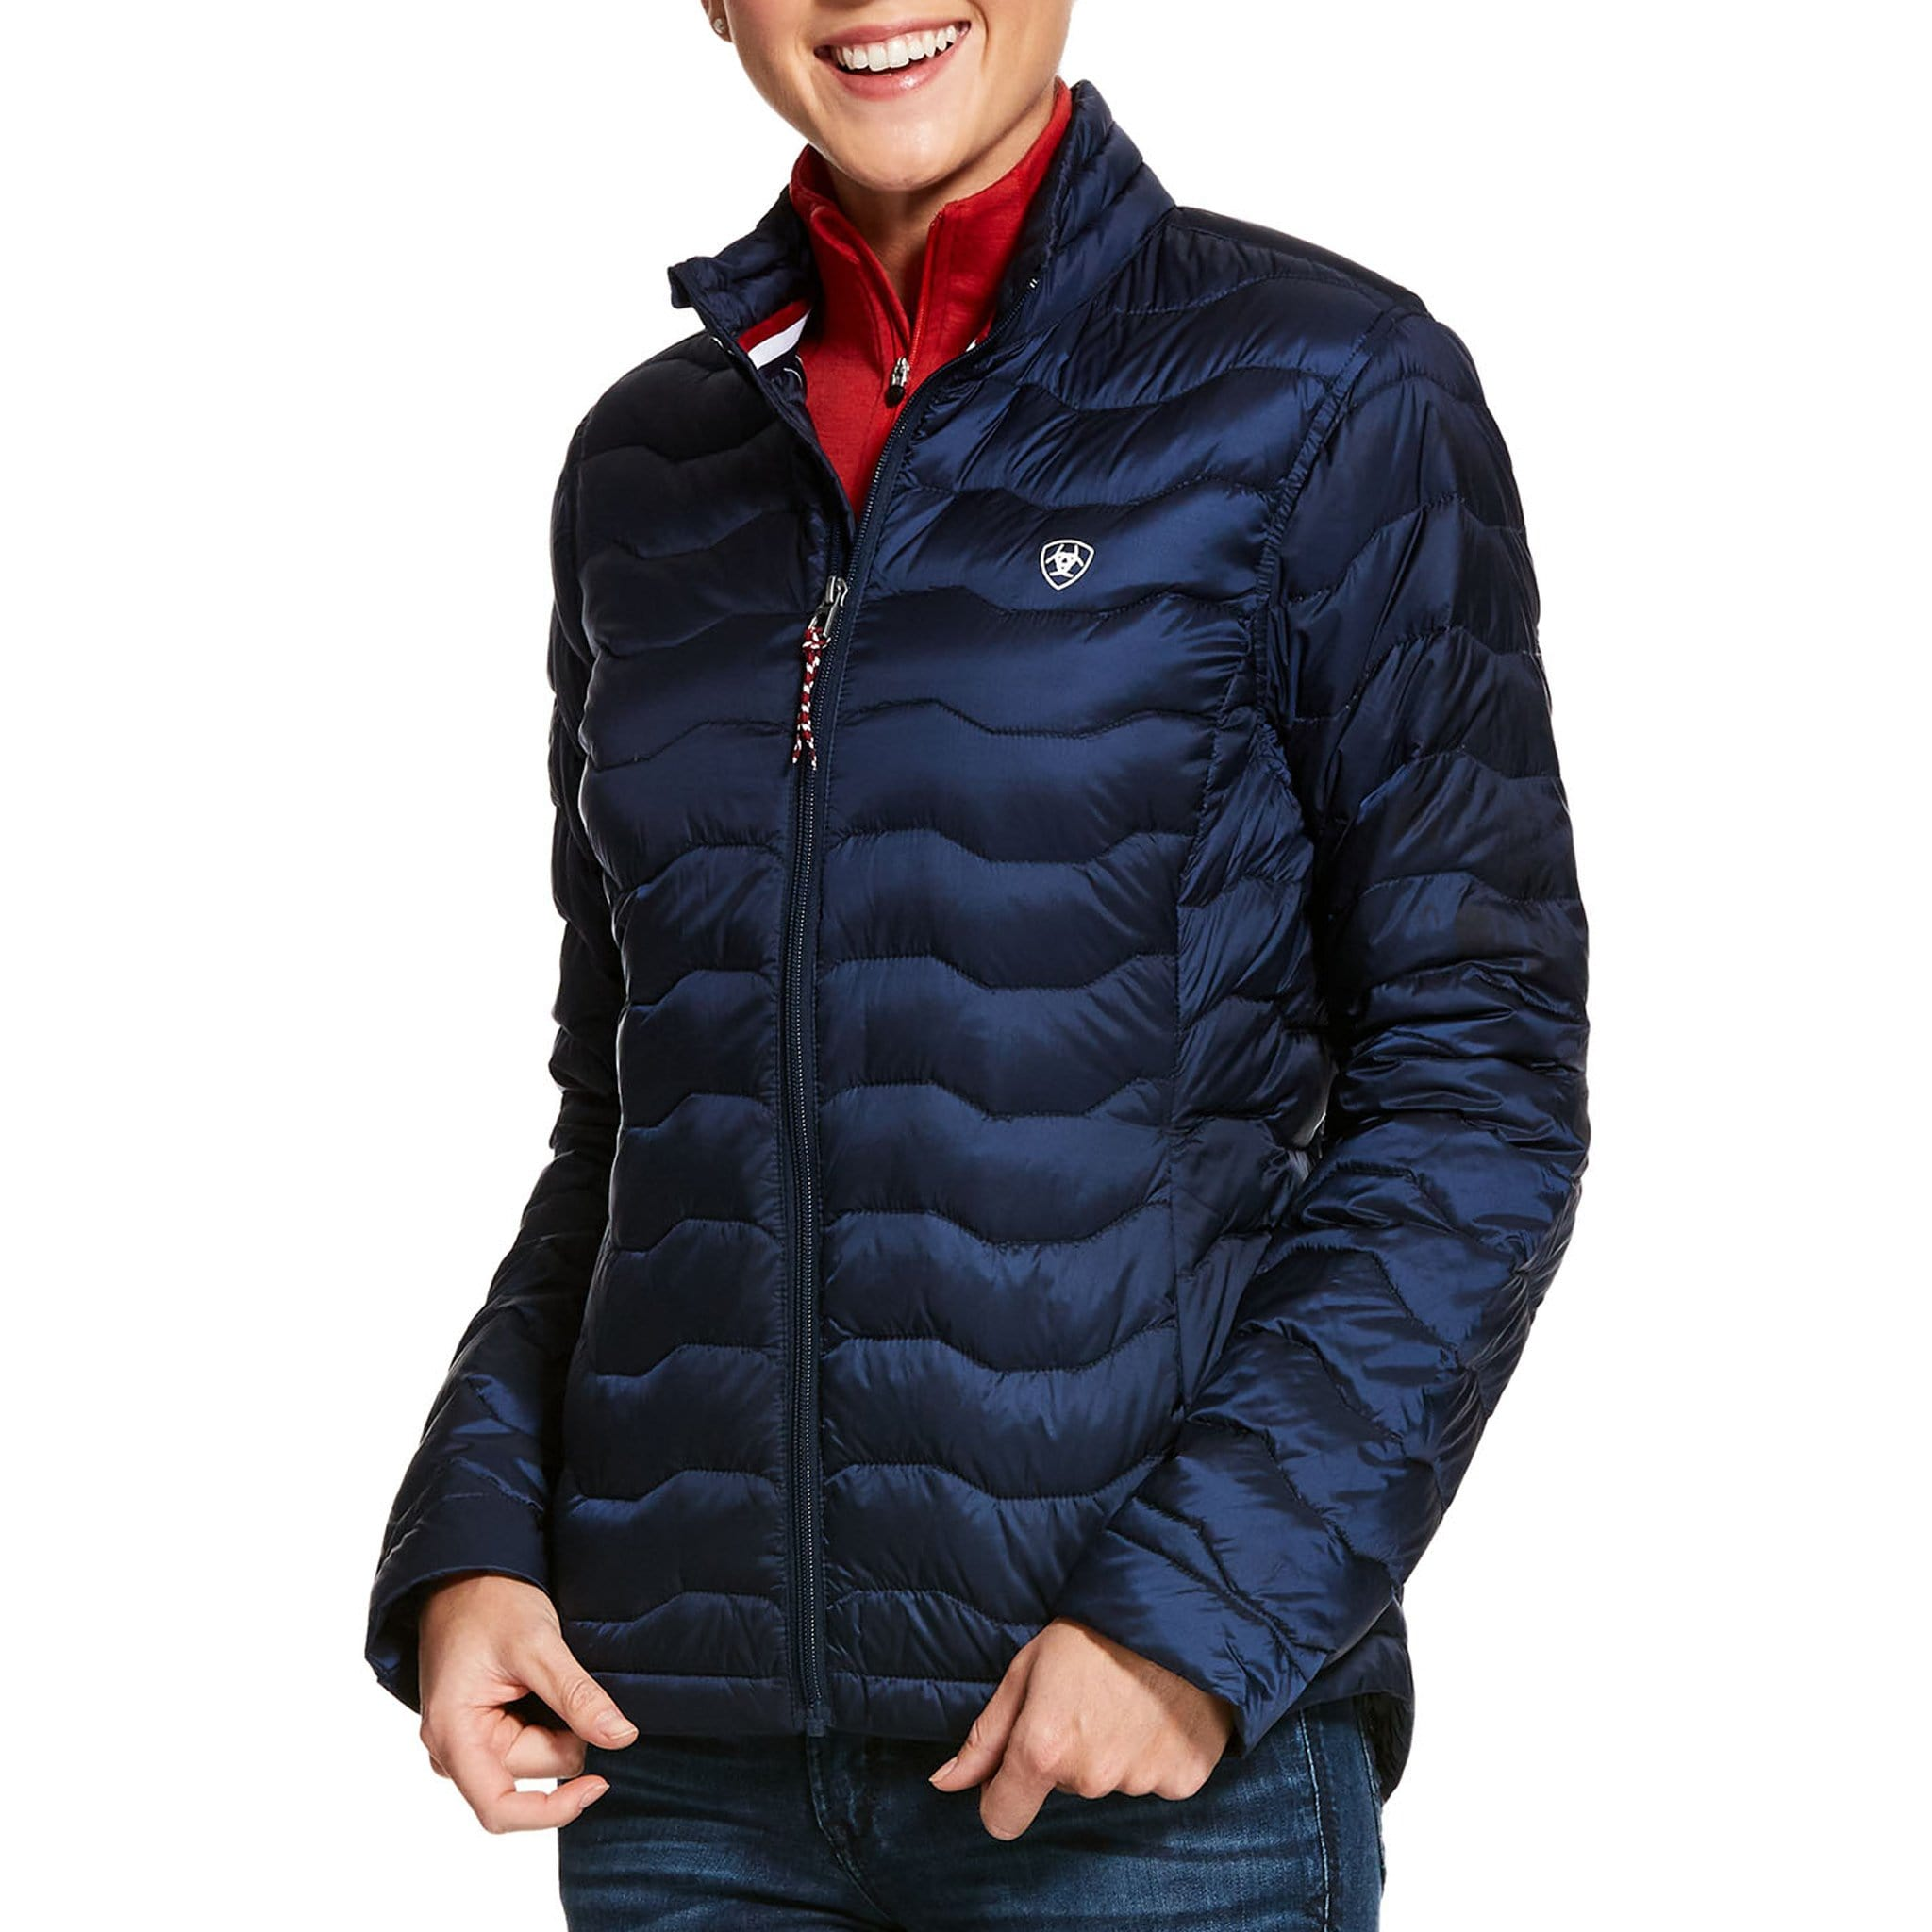 Ariat Ideal 3.0 Down Jacket 10028107 Navy Front View On Model